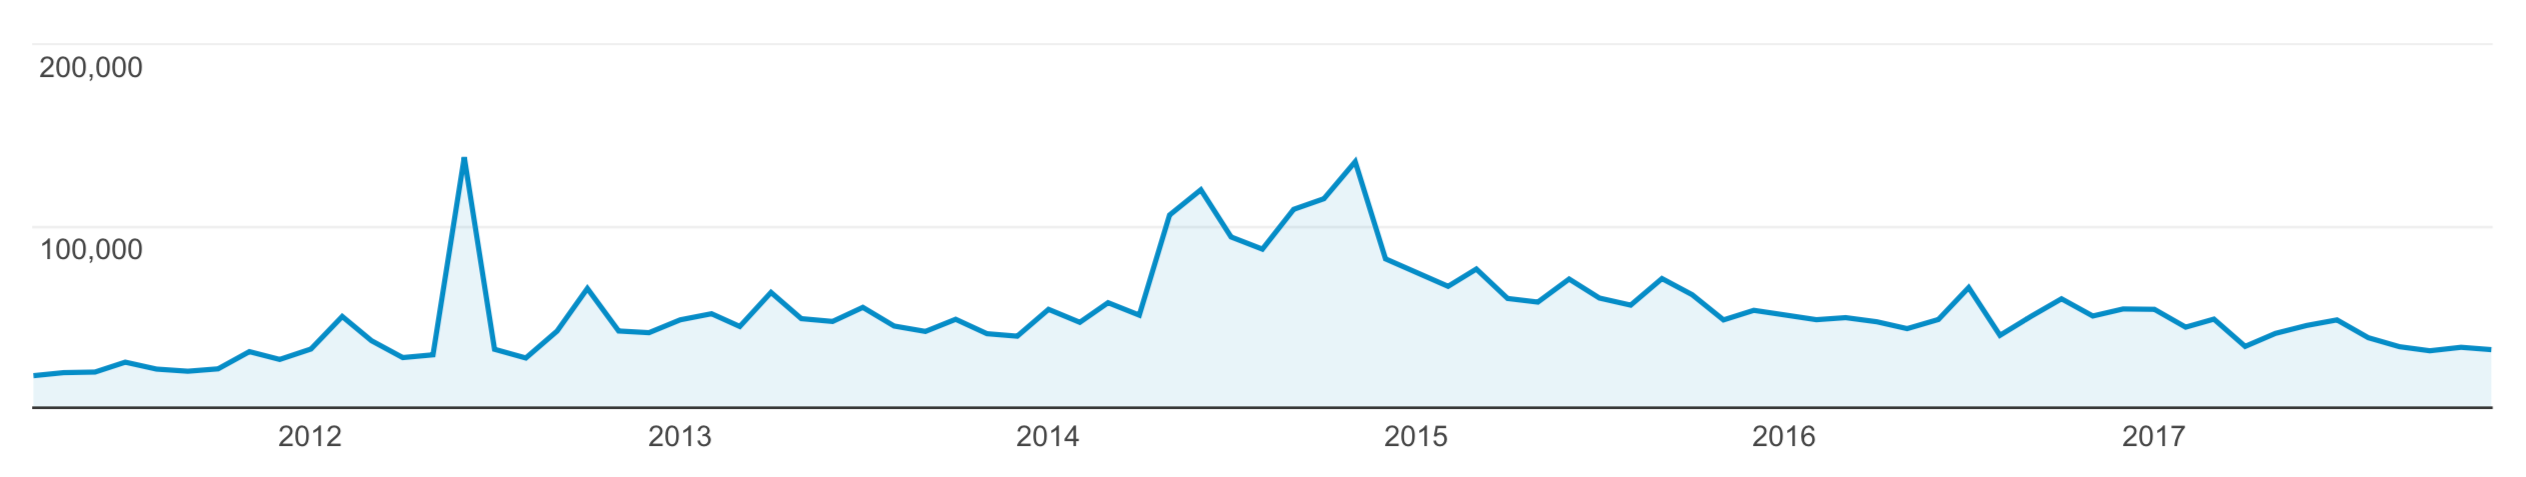 Chart of monthly pageviews as reported by Google Analytics between April 2011 and December 2017